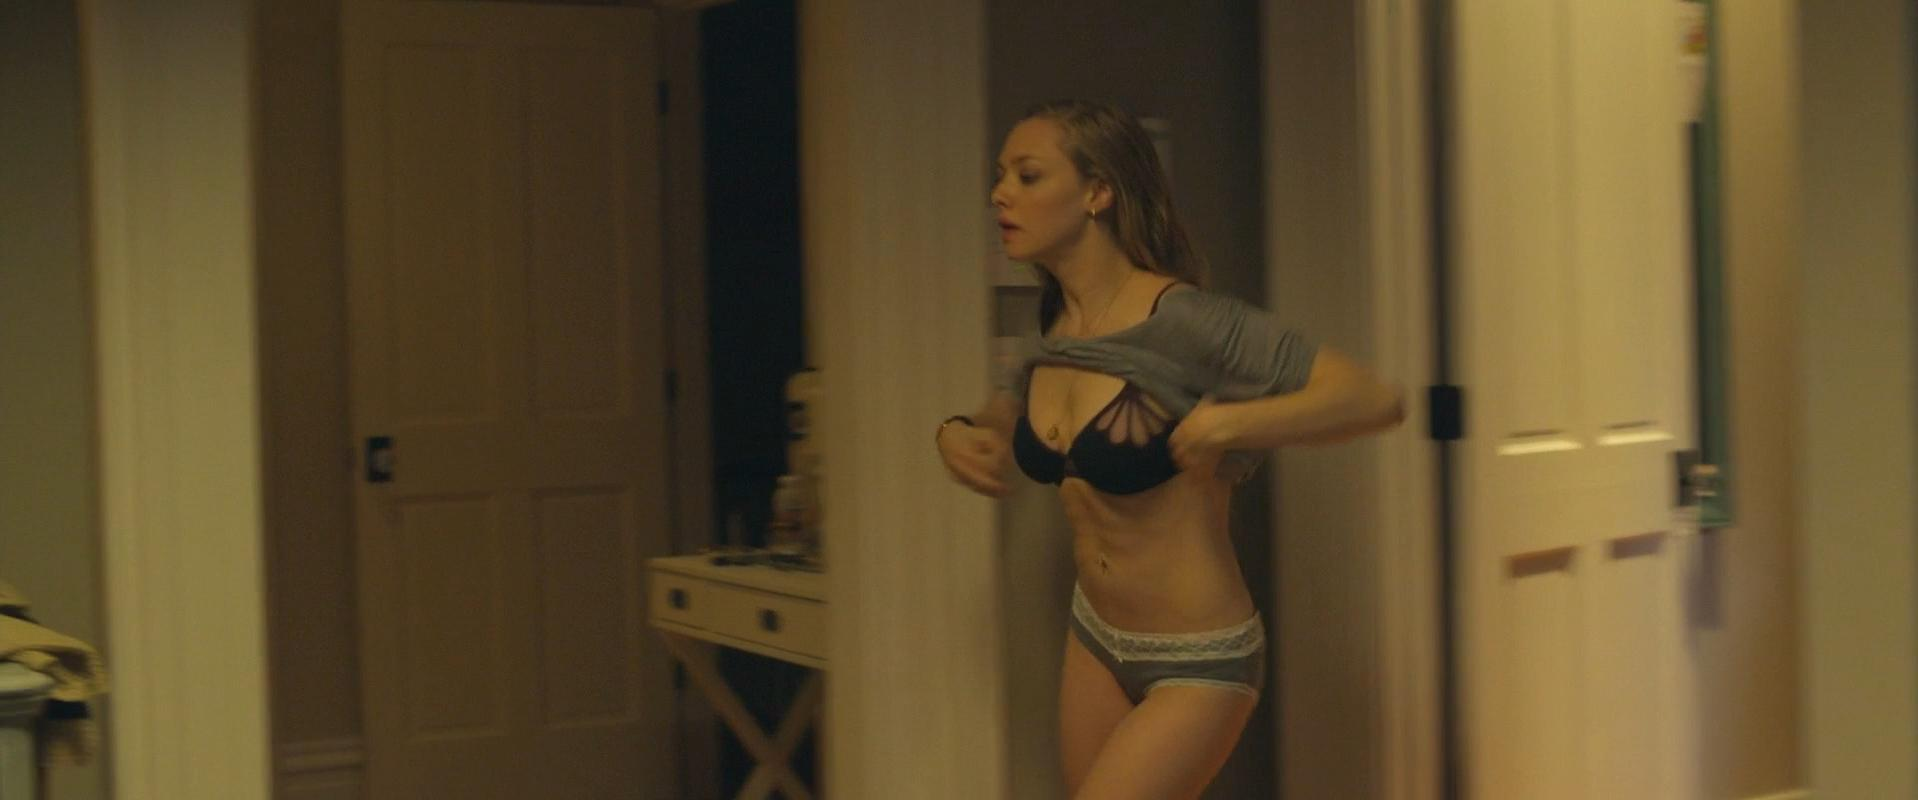 Nude Video Celebs  Amanda Seyfried Sexy - Fathers And Daughters 2015-6260